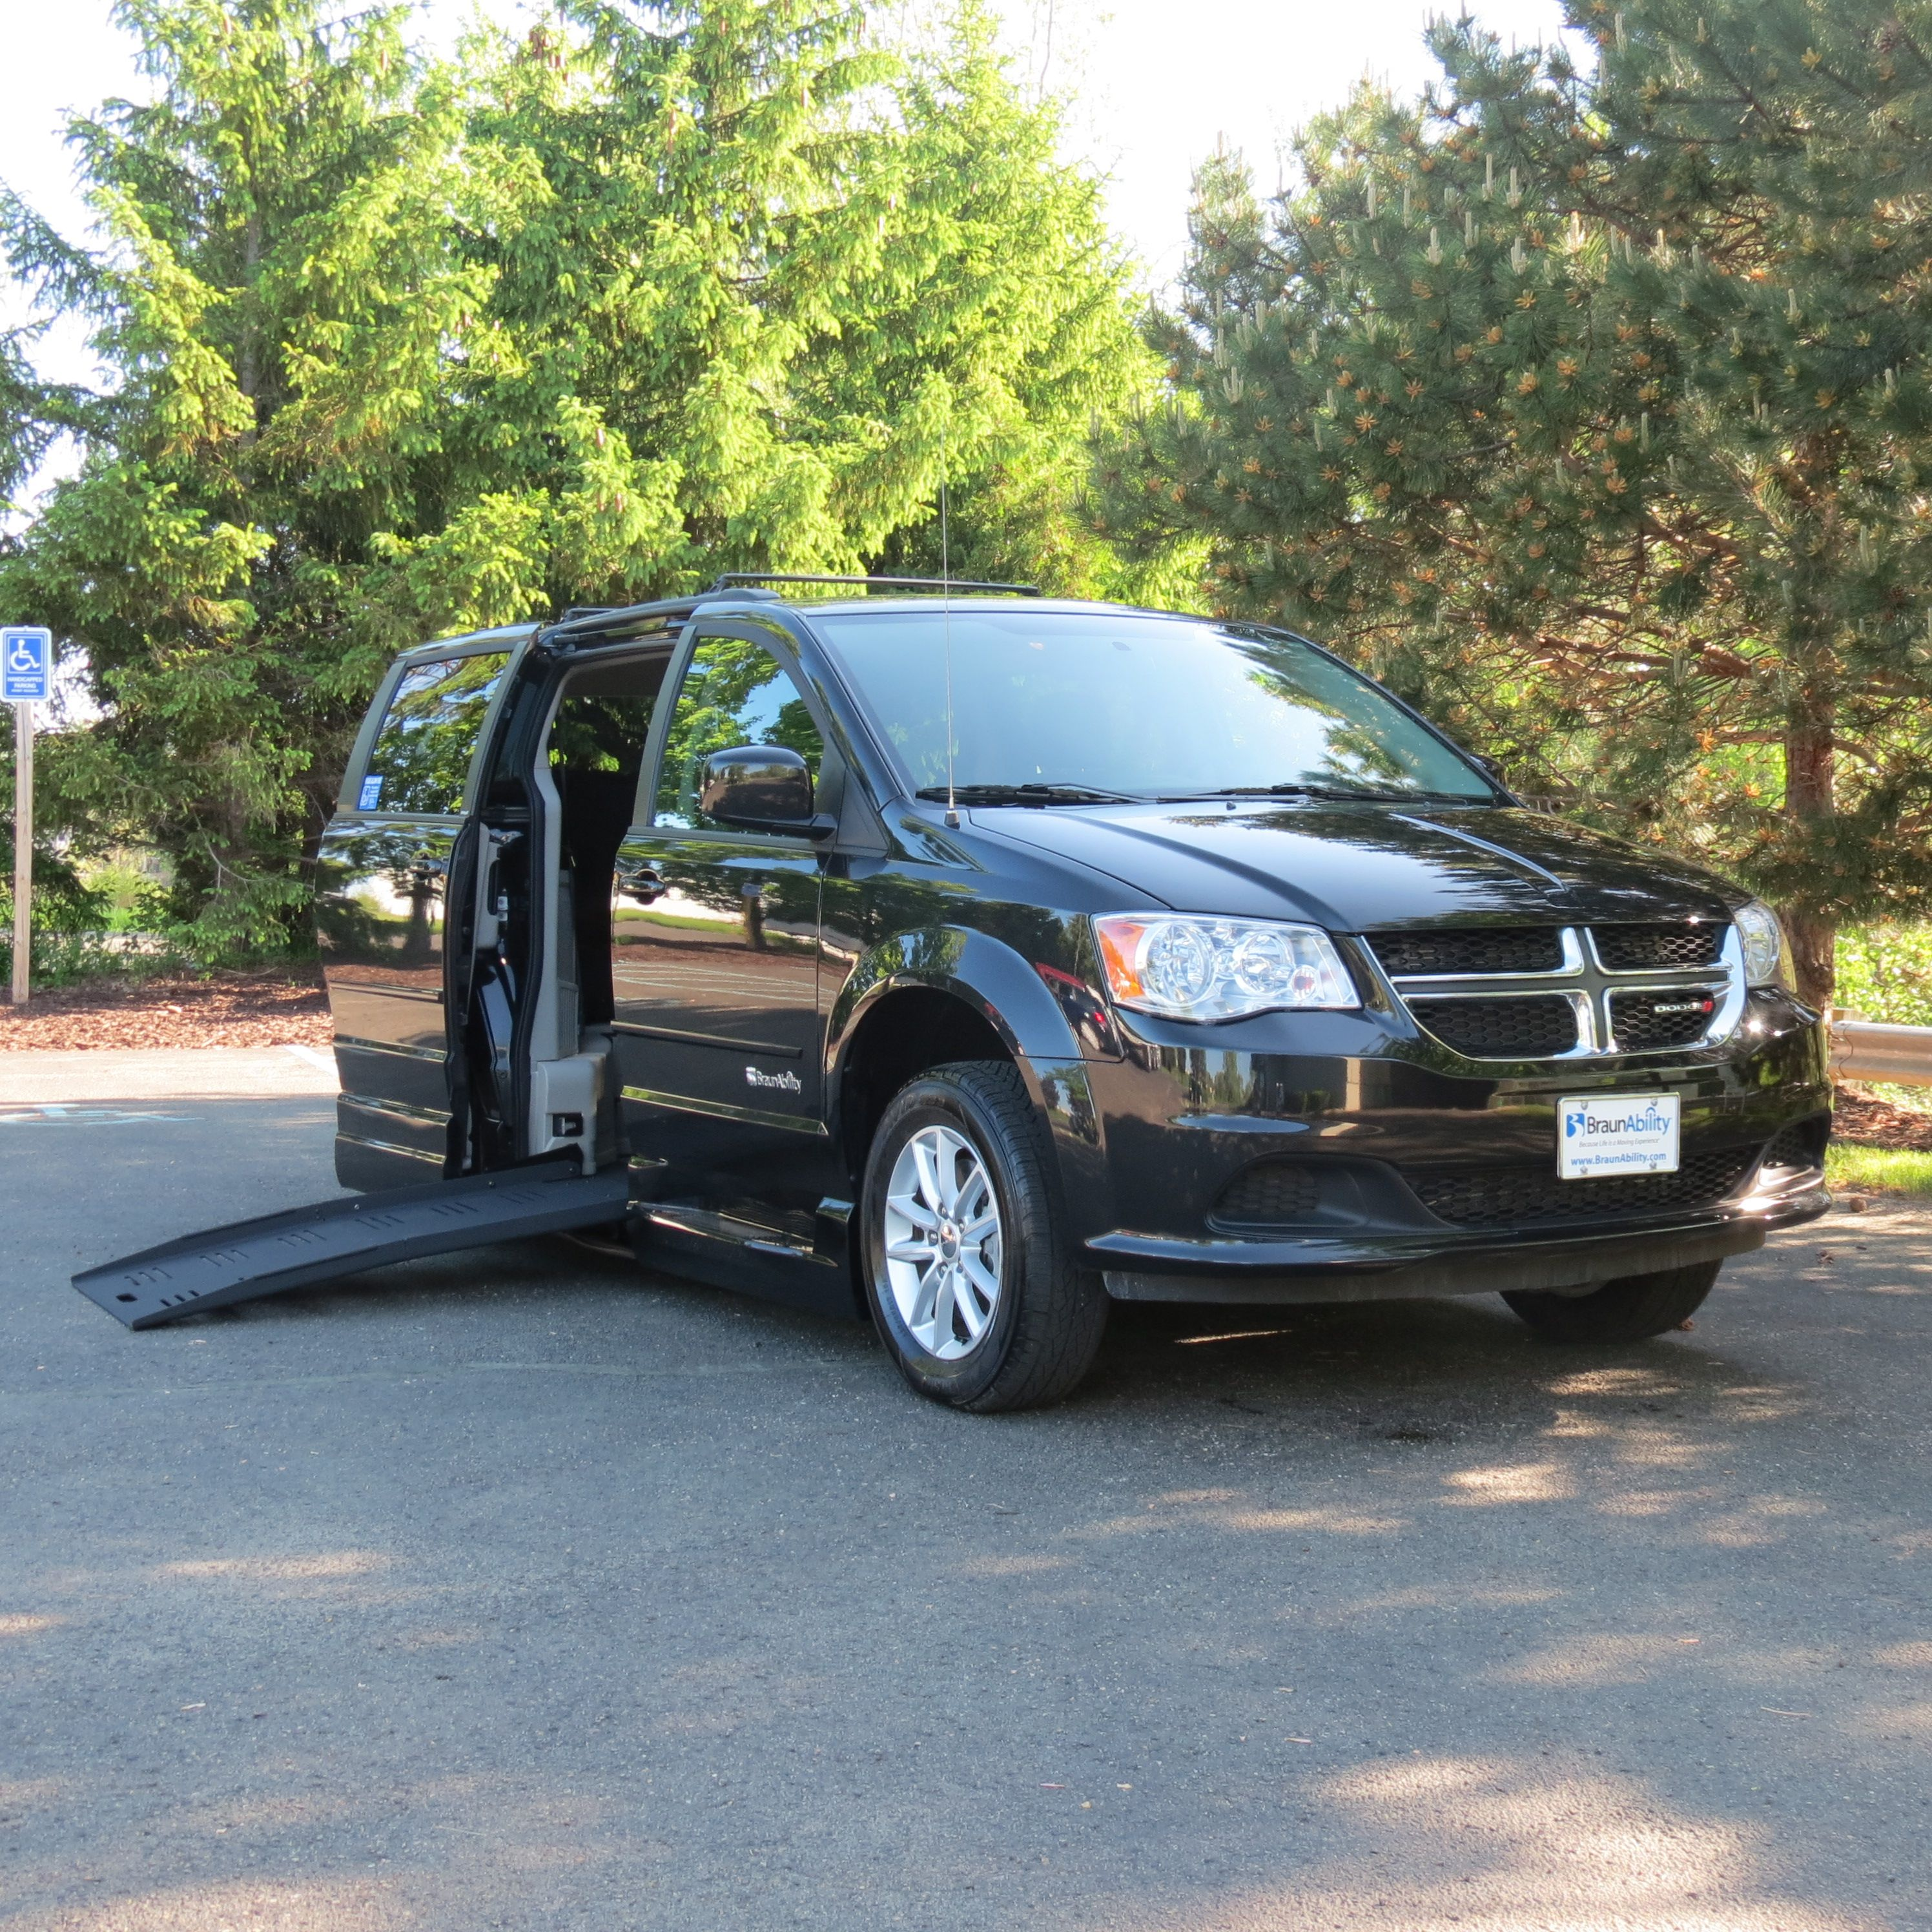 This 2013 Dodge Grand Caravan Sxt Is Fully Equipped With A Braun Entervan Xt Power Kneel And Power Fold Out Grand Caravan Accessible Van Certified Pre Owned